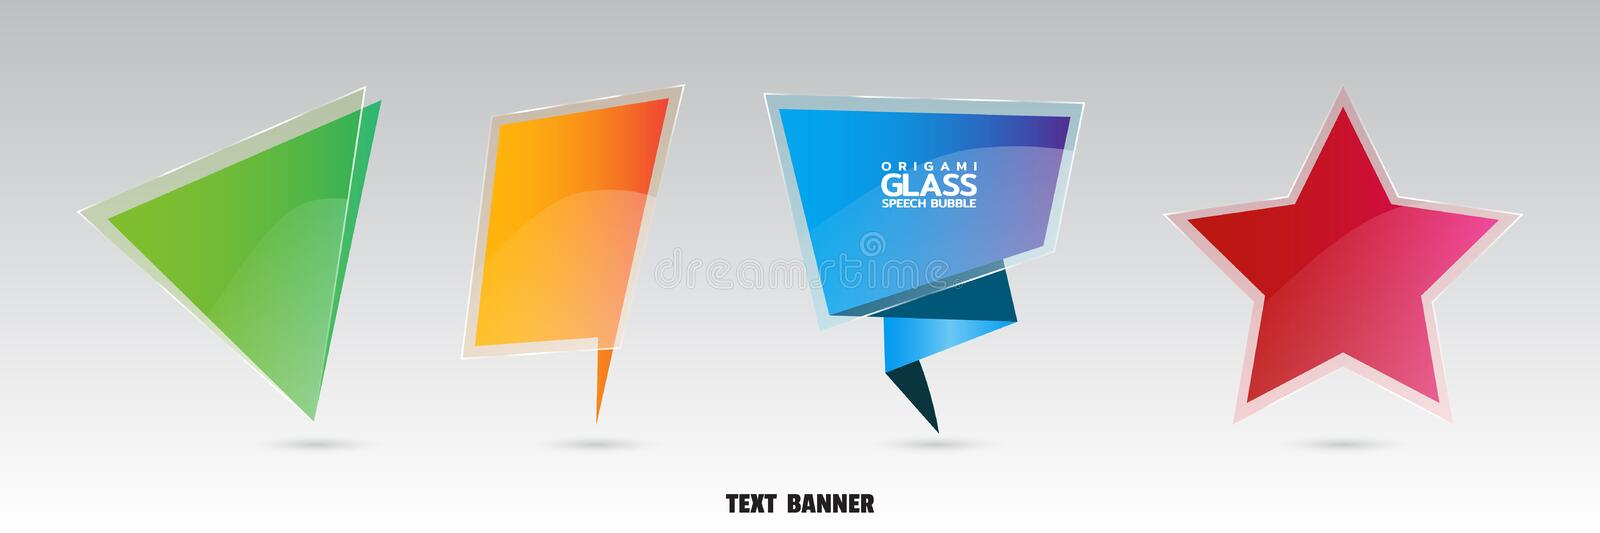 Origami paper banner with glossy glass effect. Set of web banners for sales and promotions. Dialogue banner for message stock illustration